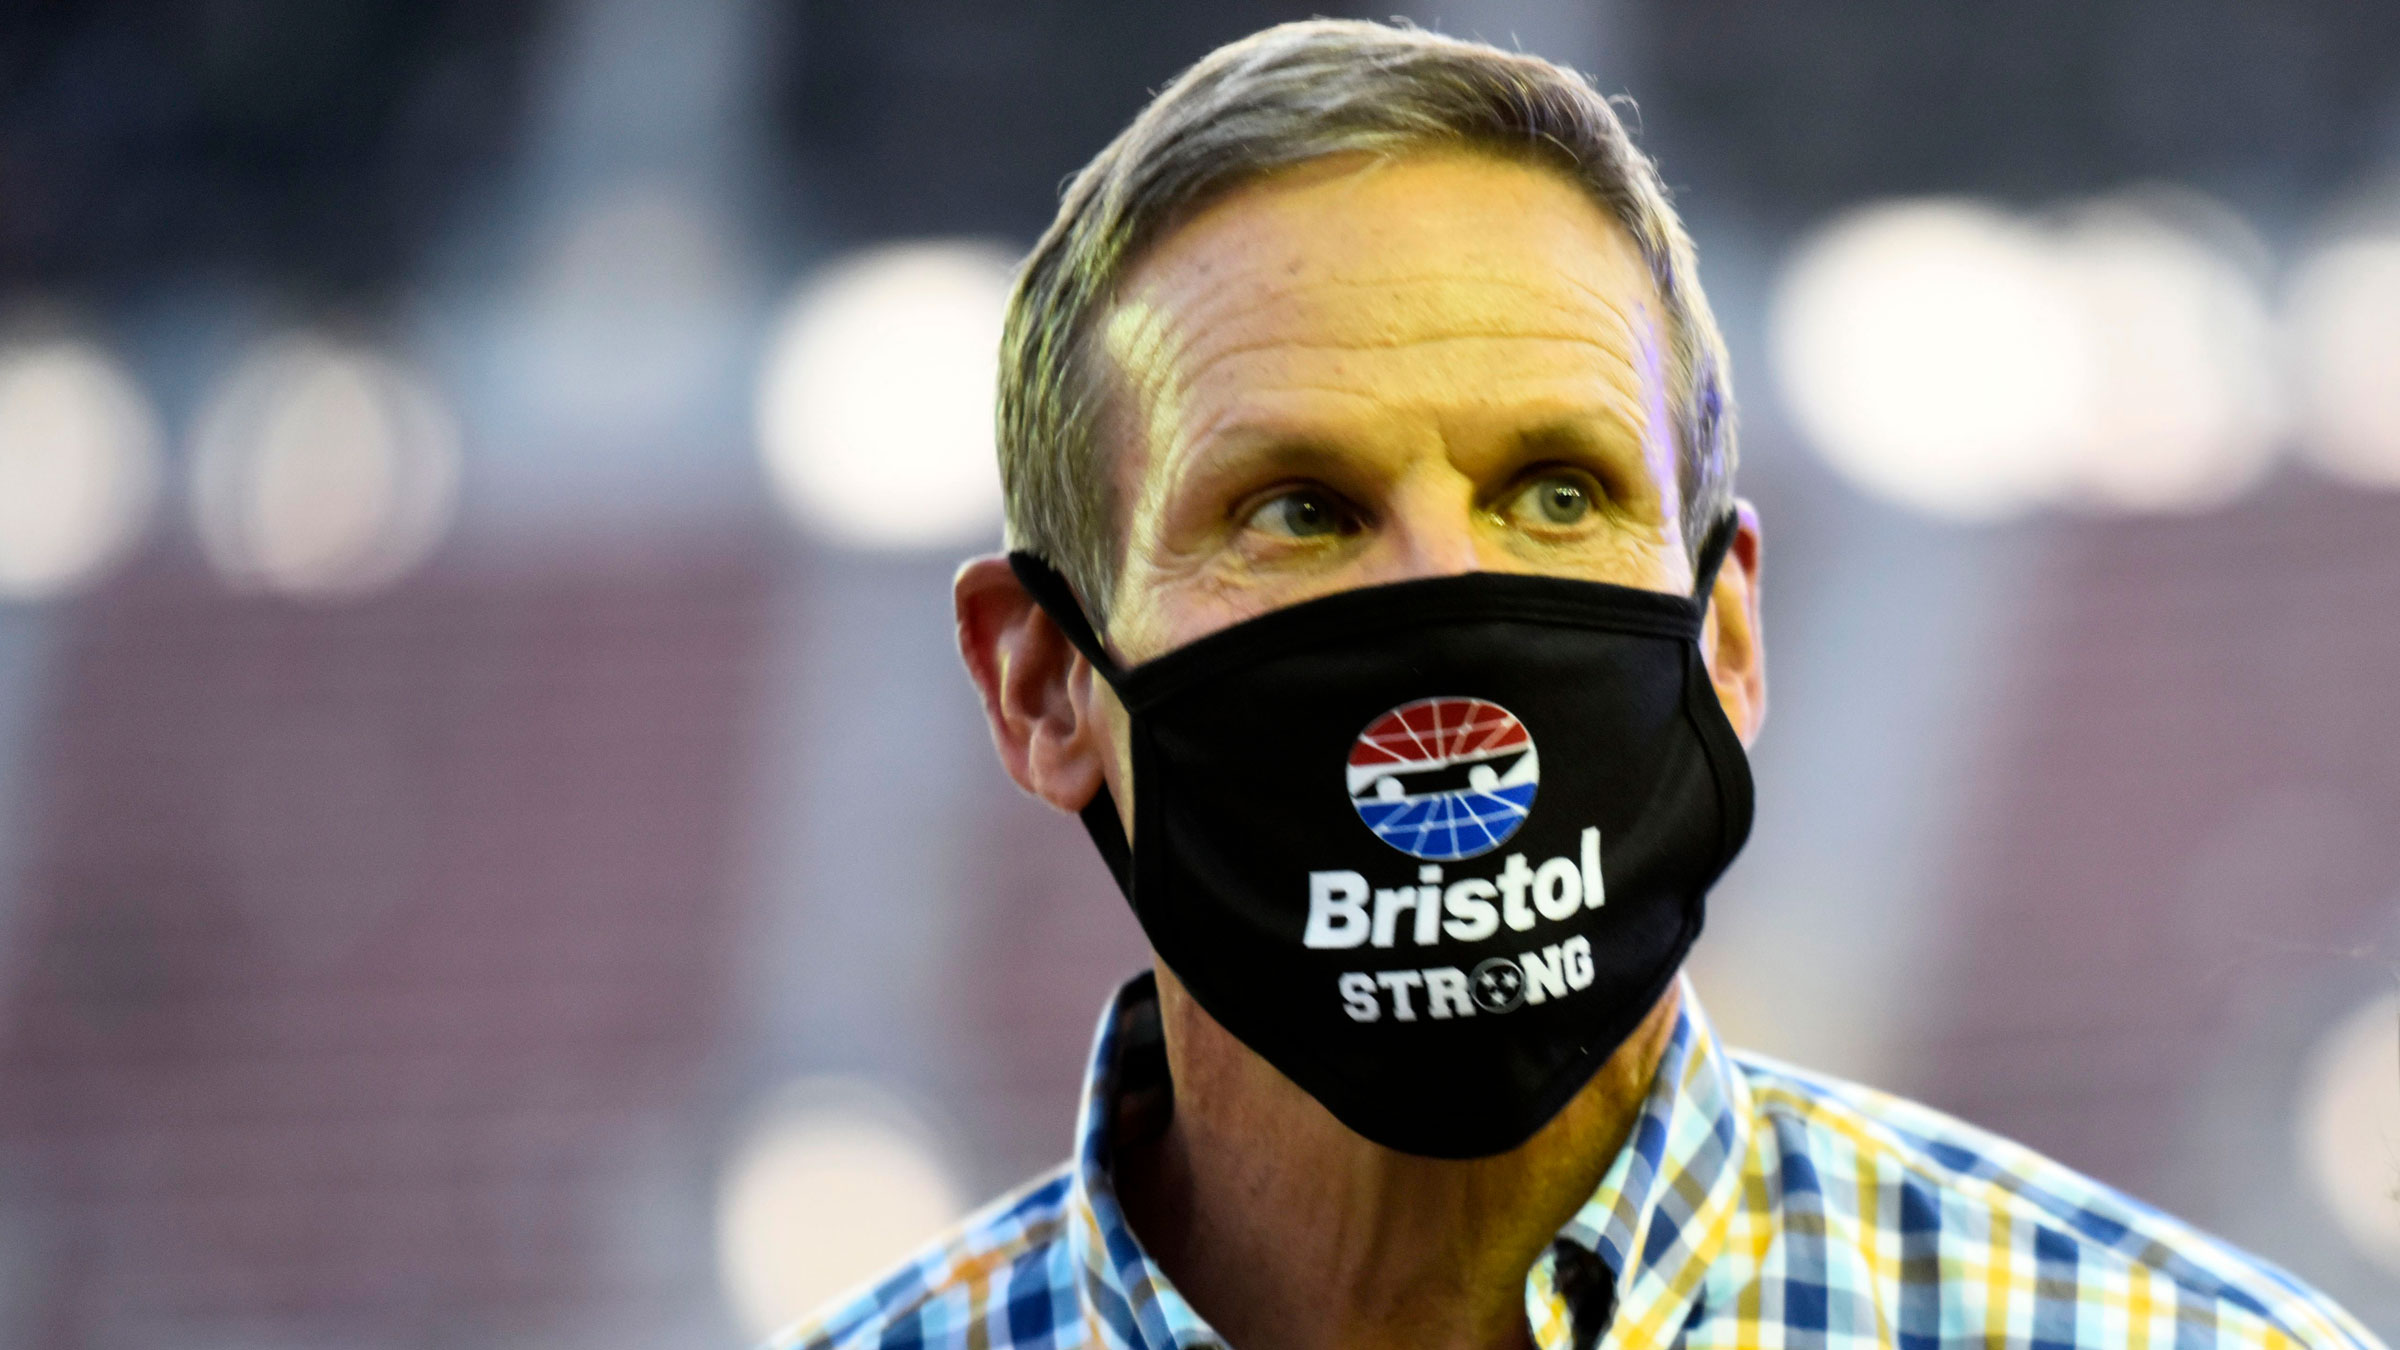 Tennessee Gov. Bill Lee attends a NASCAR race in July.